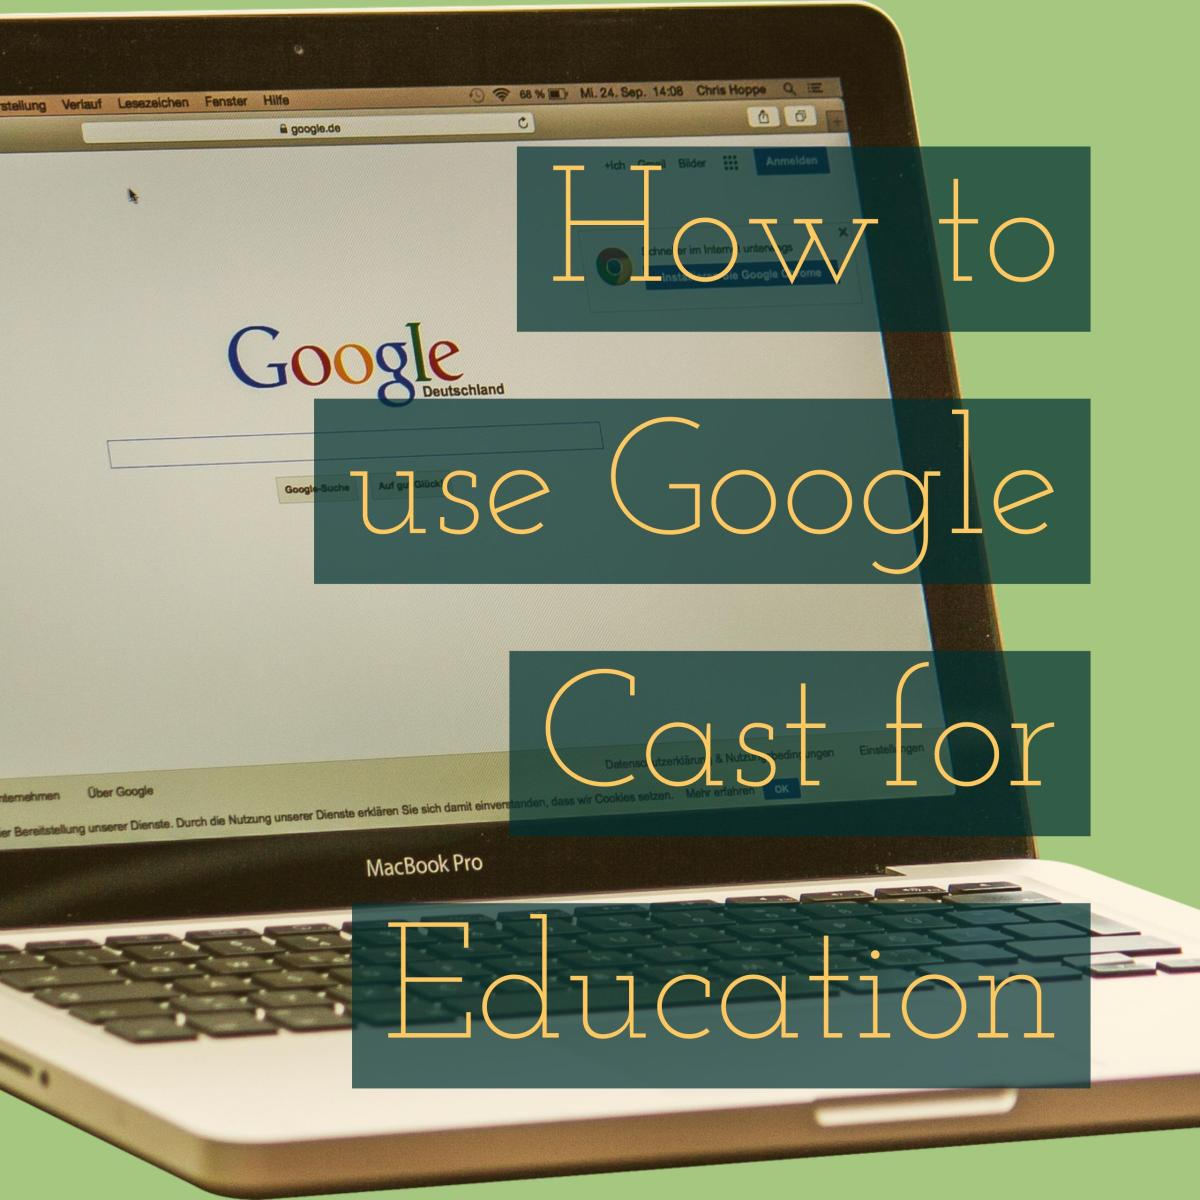 How to use Google Cast for Education